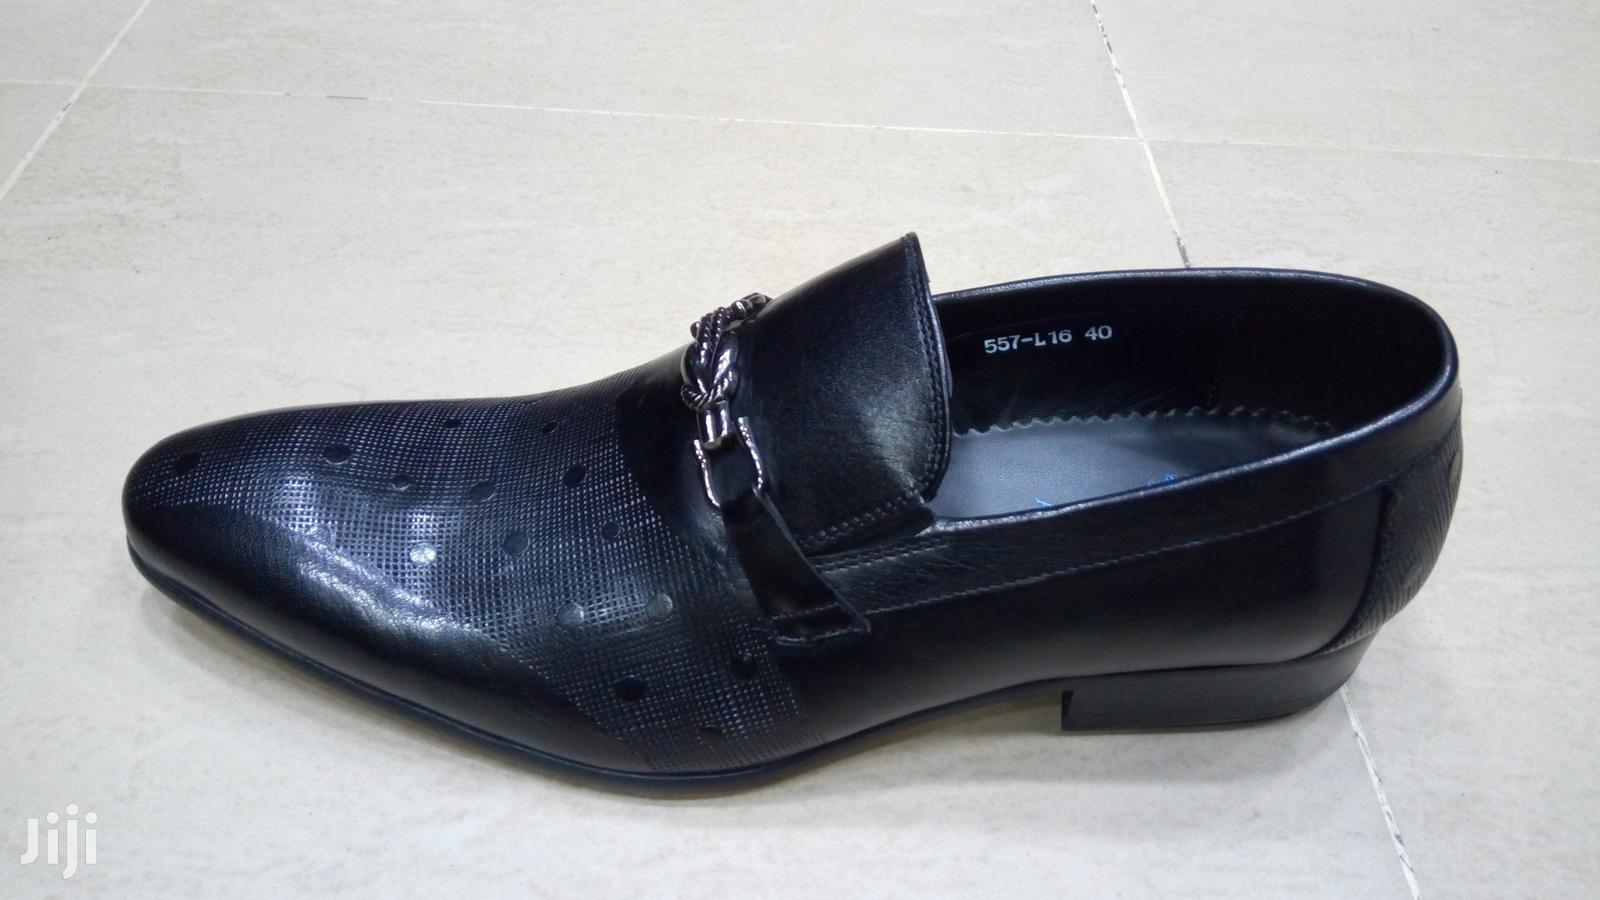 Men's Quality Shoes | Shoes for sale in Yaba, Lagos State, Nigeria